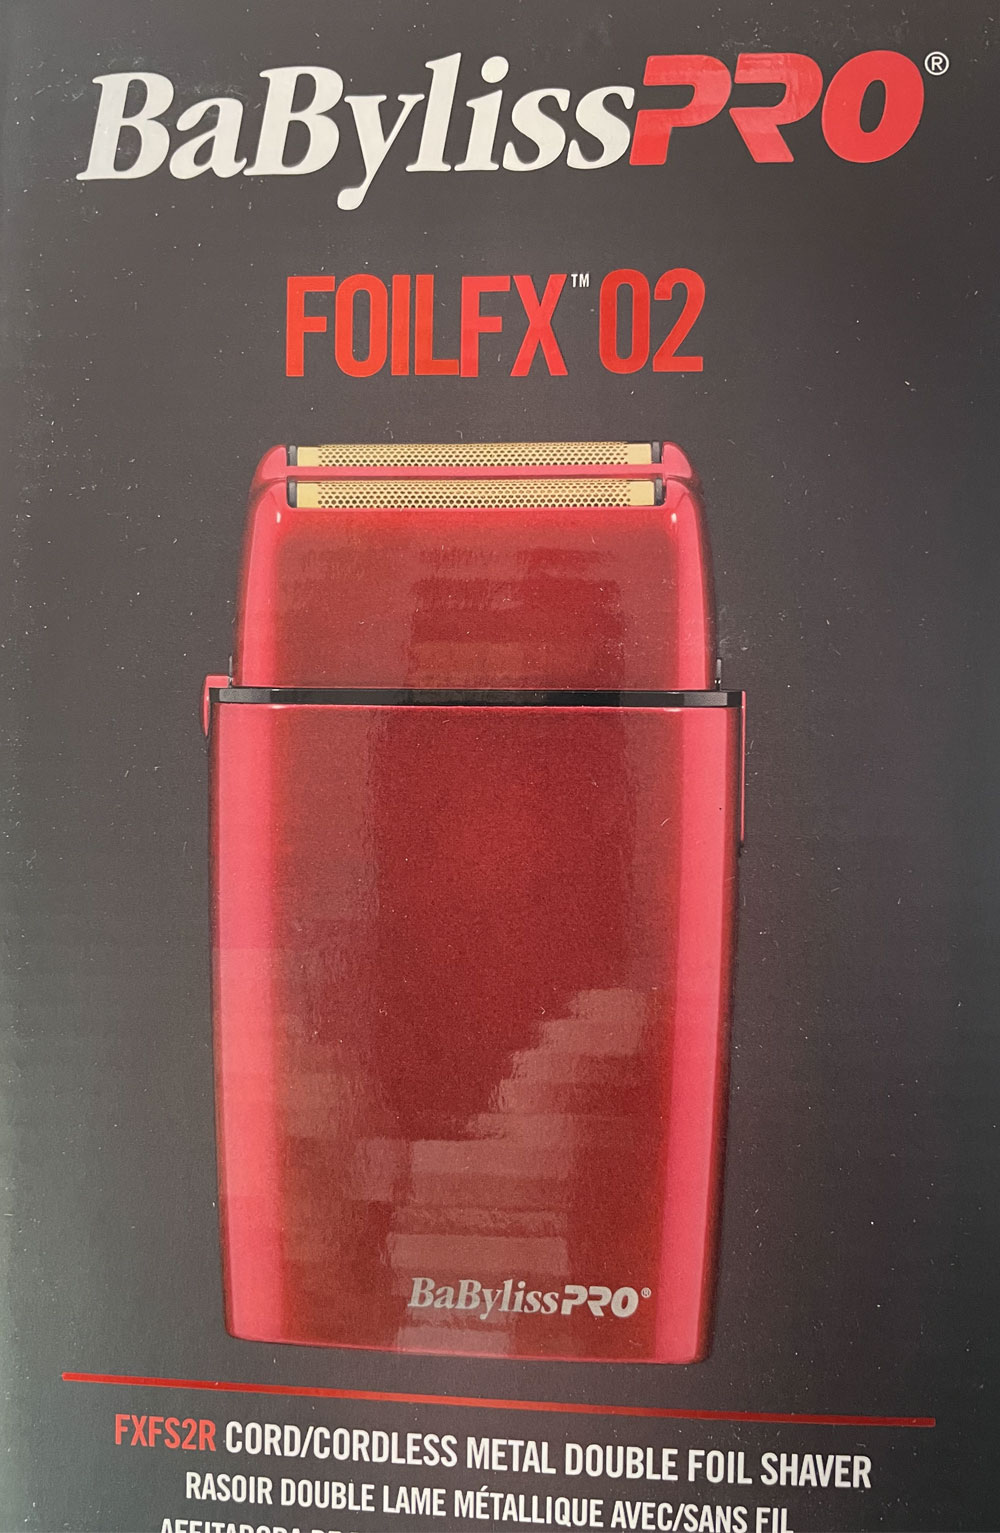 BabylissPro FoilFX02 Cordless RED Metal Double Foil Shaver